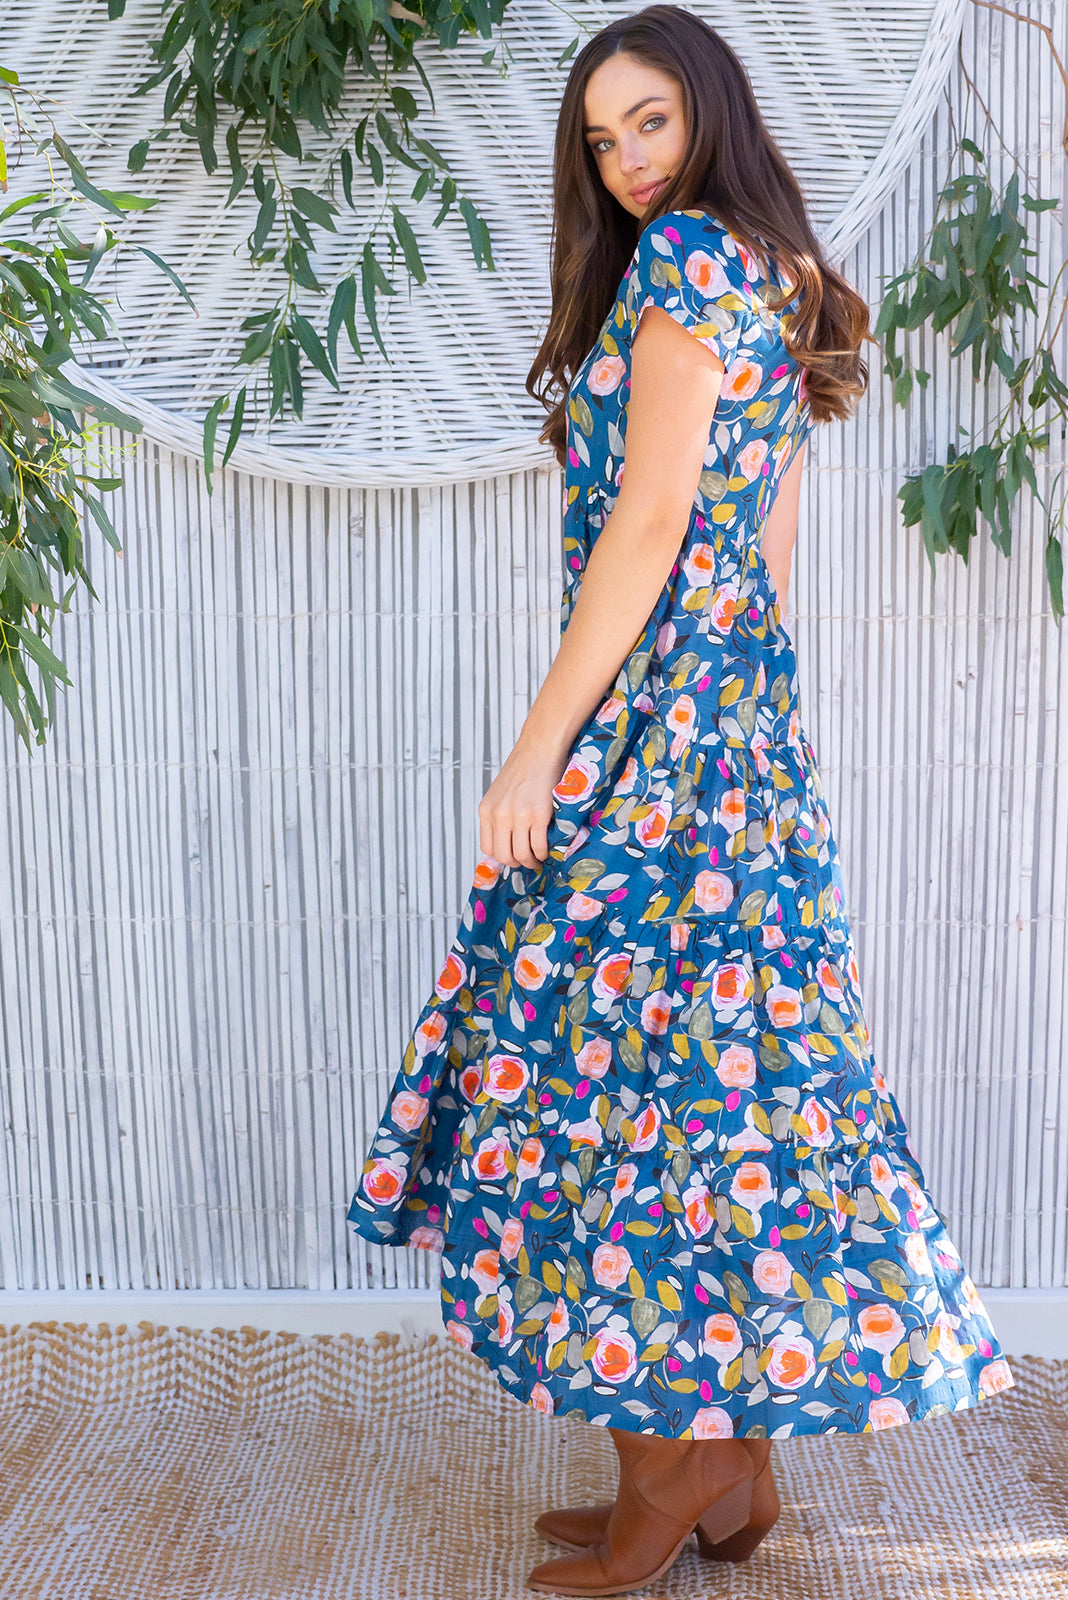 The Lucky Lulu Polka Rose Maxi Dress is inspired by vintage prints and beautiful gardens featuring scooped neckline, side pockets, navy/teal base with multicoloured rose design featuring fuchsia, peach, gold, mint and khaki in woven 100% cott